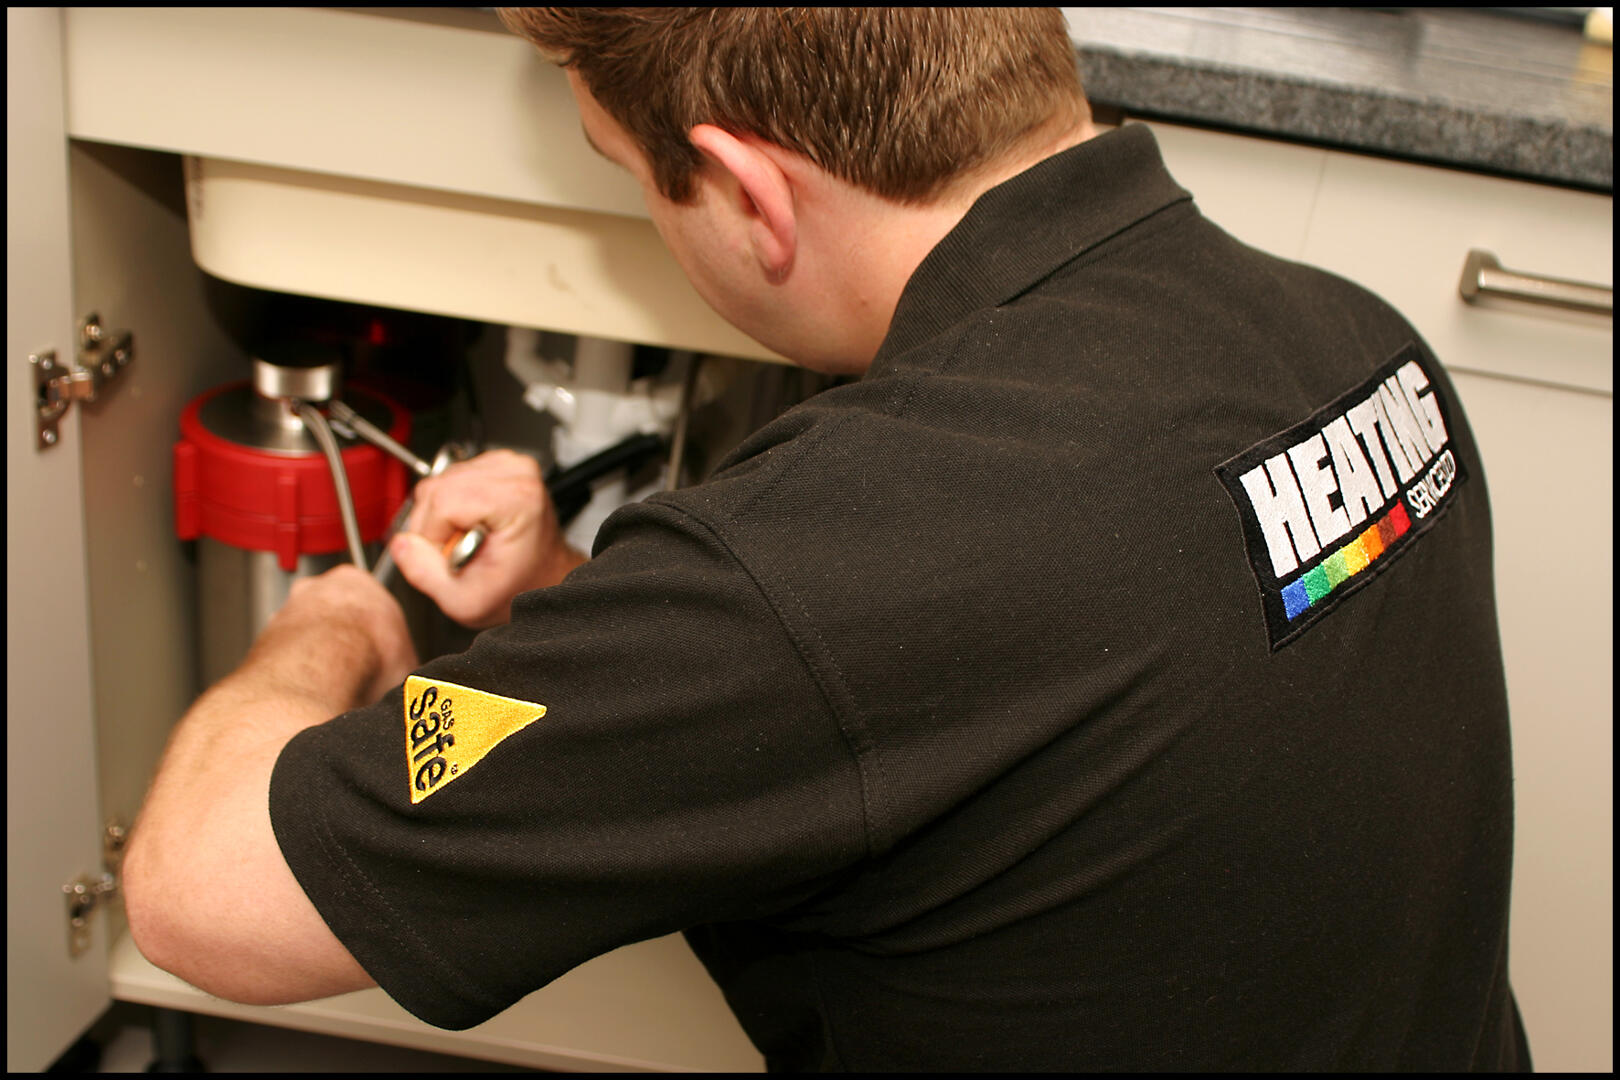 Plumbers Boiler Installation Service and Repairs and Bathroom Design and Installation by Heating Services Ltd in Sevenoaks (3)